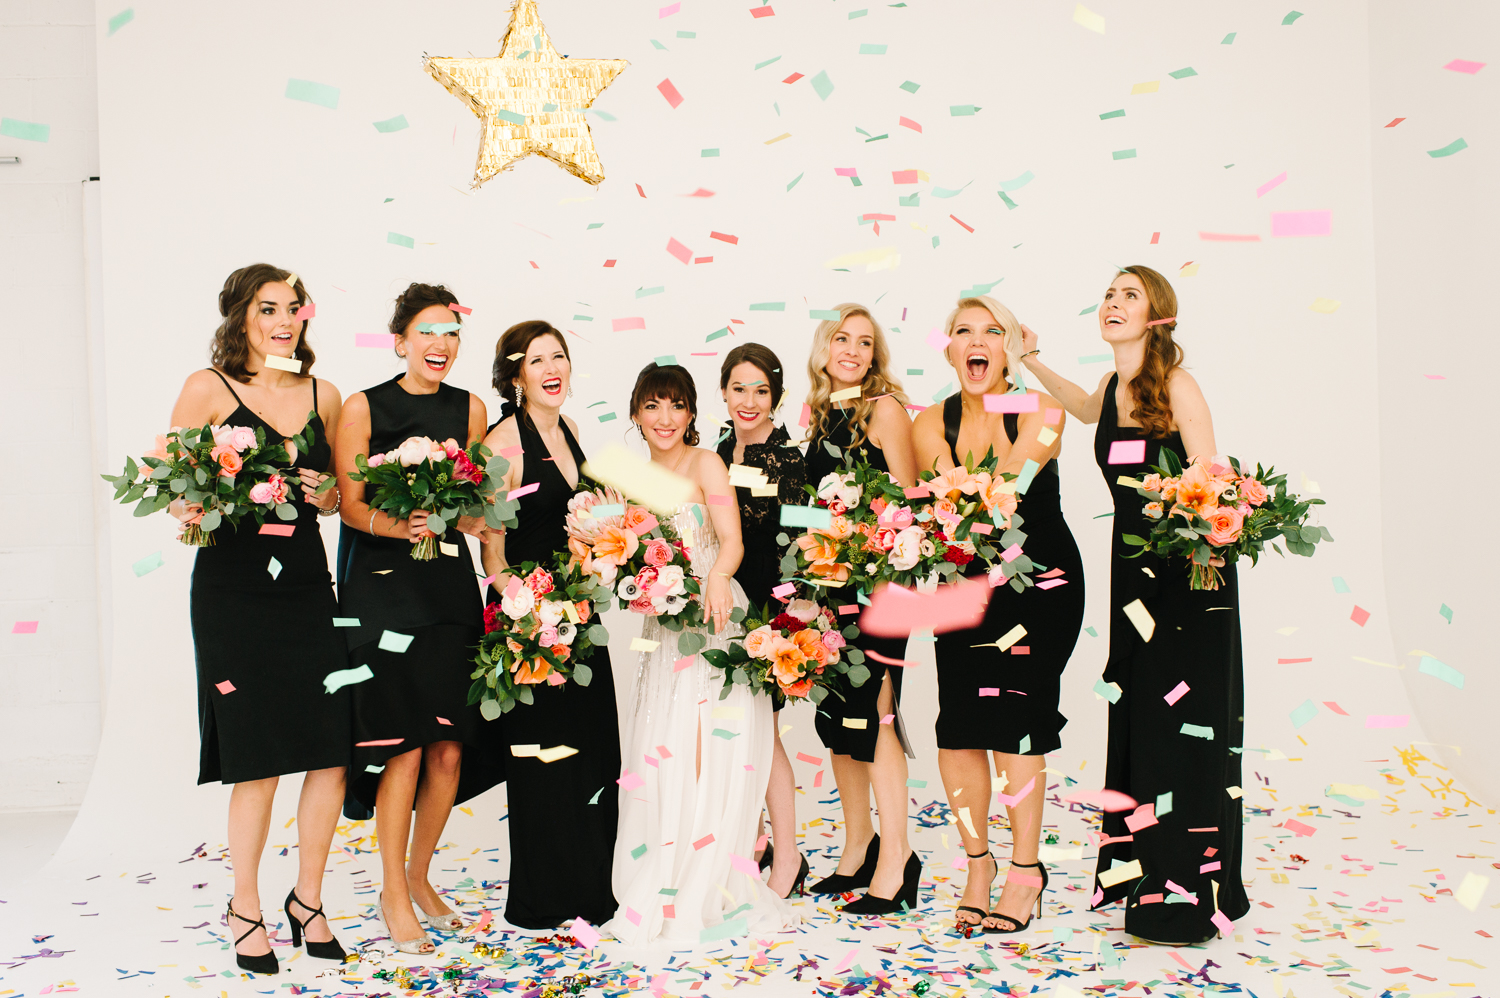 tara mcmullen photography four seasons toronto wedding photos jesi haack design wedding love by lynzie wedding confetti and champagne-018